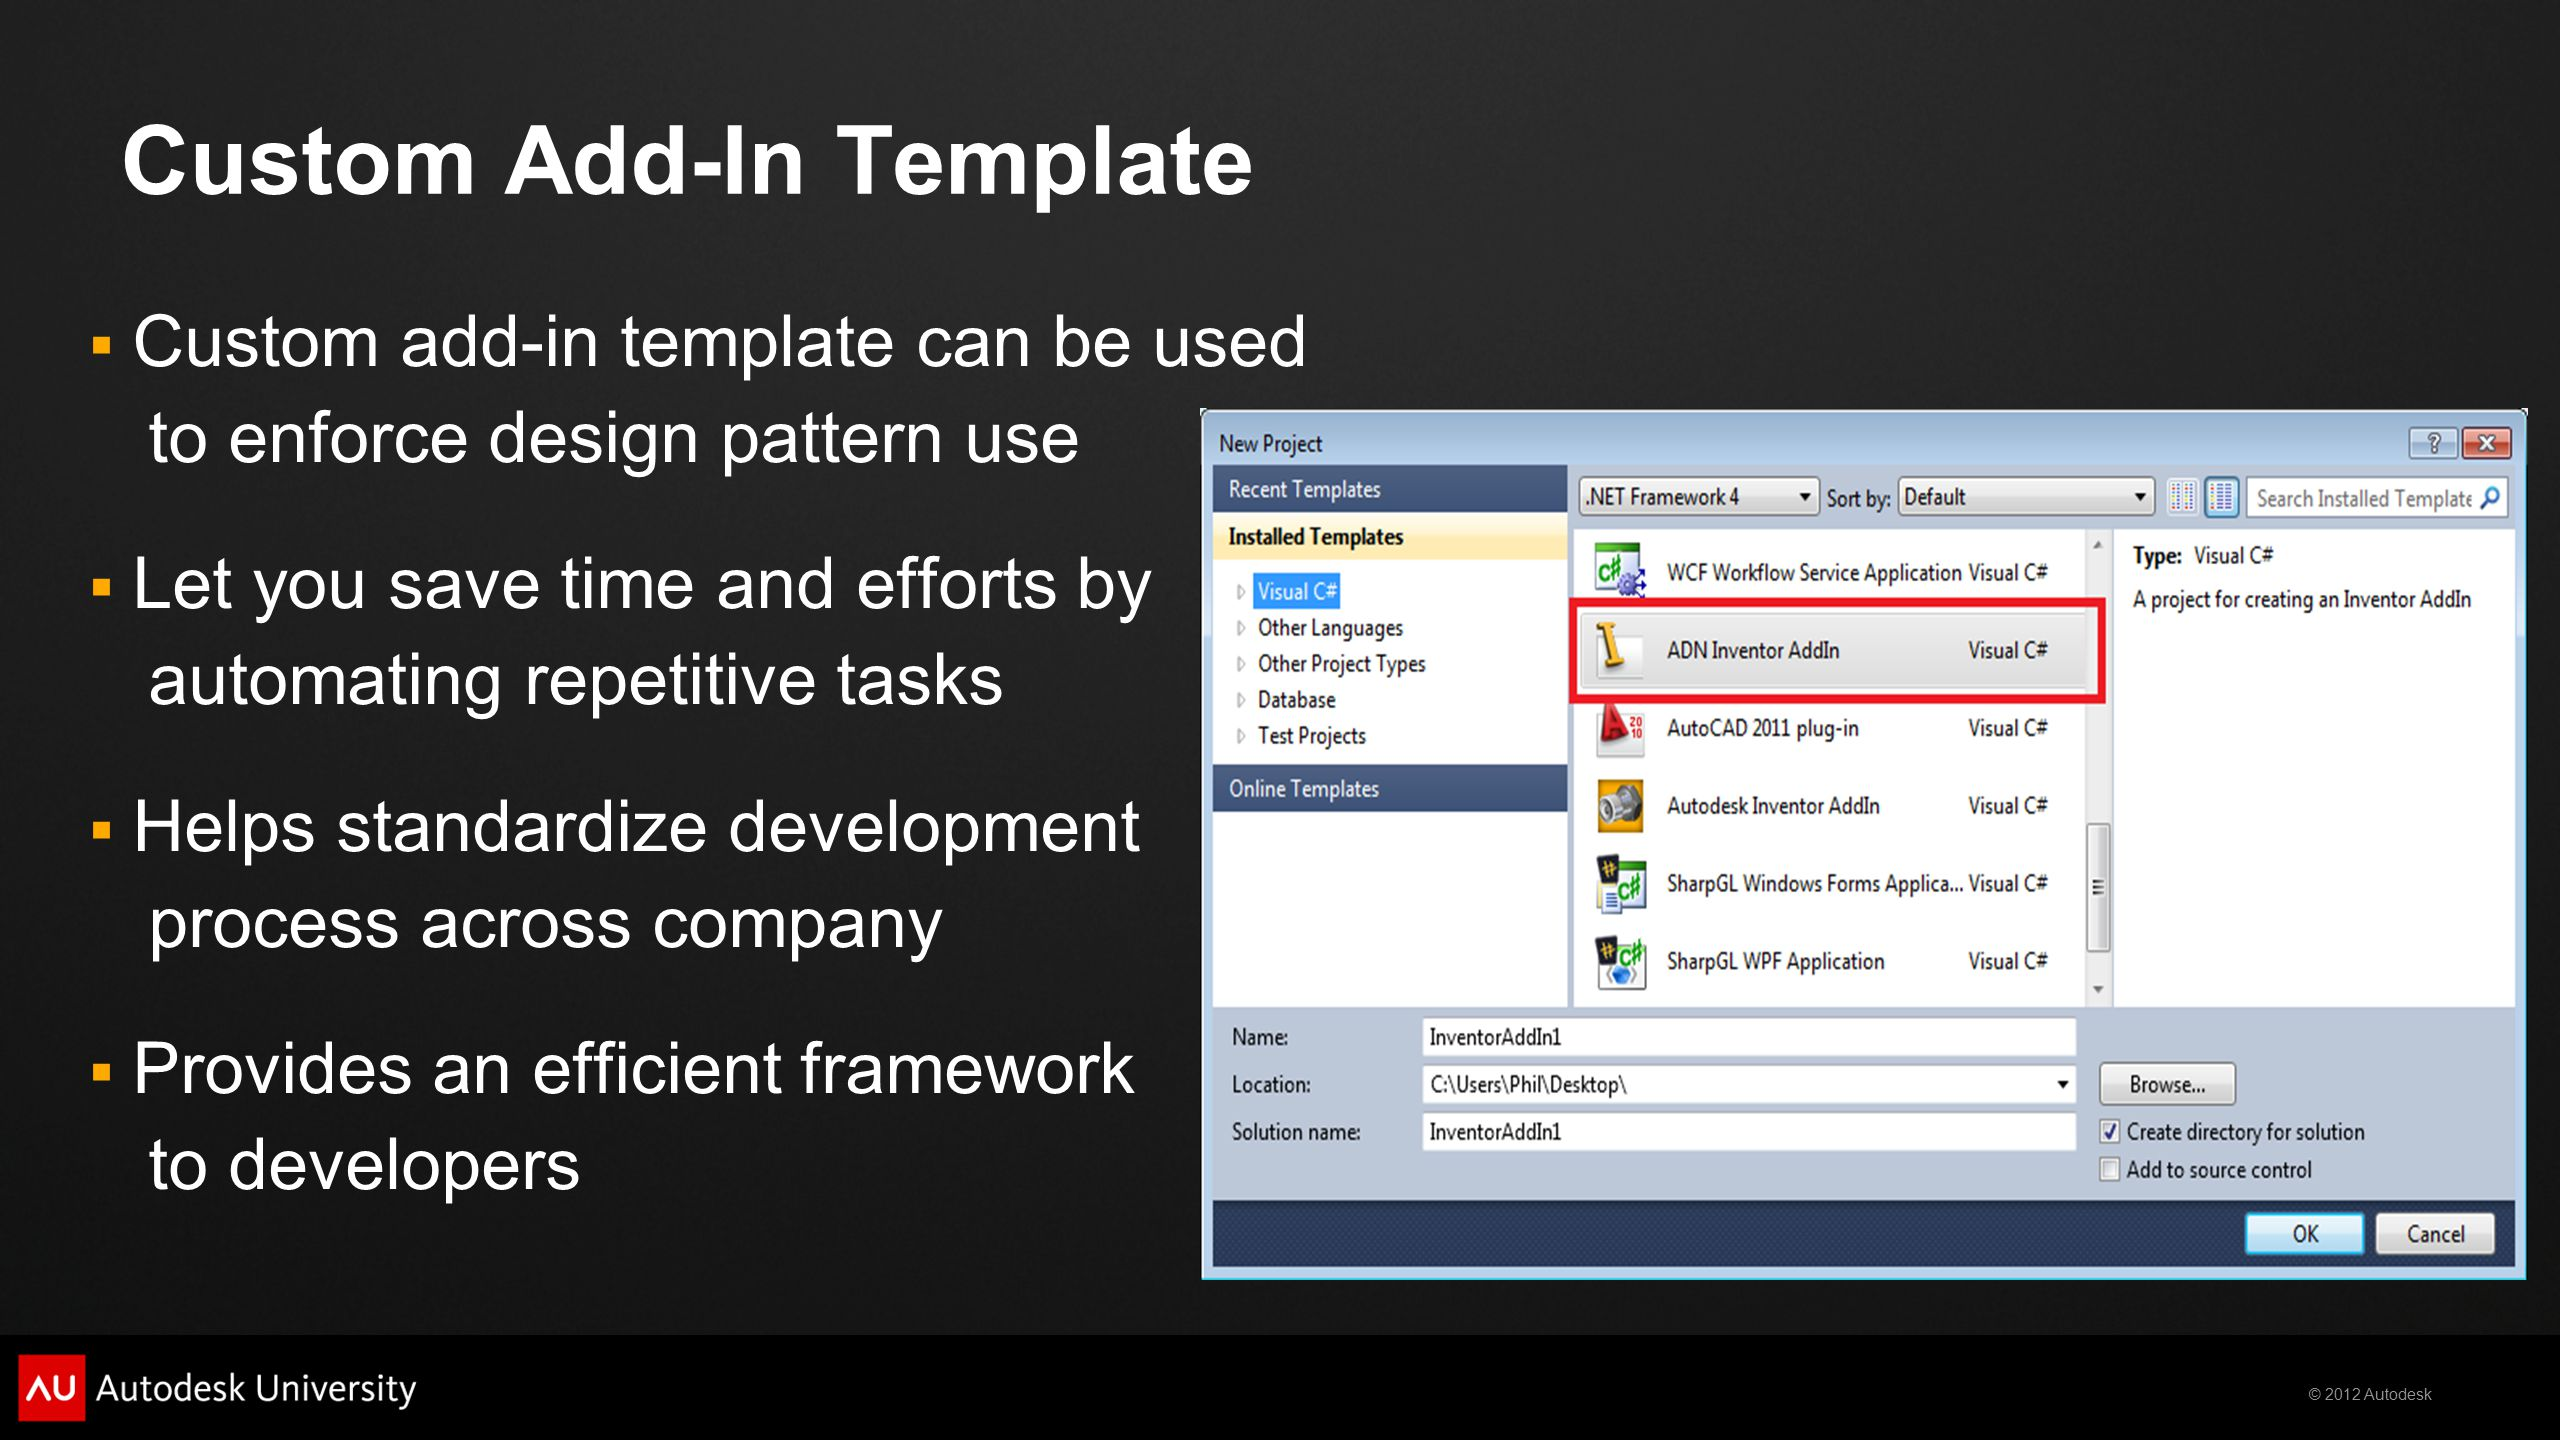 © 2012 Autodesk Creating Custom Templates Creating your own custom add-in template is straightforward from Visual Studio interface: Web references dealing with more advanced functionalities:  http://msdn.microsoft.com/en-us/magazine/cc188697.aspx http://msdn.microsoft.com/en-us/magazine/cc188697.aspx  http://blogs.microsoft.co.il/blogs/oshvartz/archive/2008/07/26/creating-visual-studio-items-template-with- custom-wizard.aspx http://blogs.microsoft.co.il/blogs/oshvartz/archive/2008/07/26/creating-visual-studio-items-template-with- custom-wizard.aspx